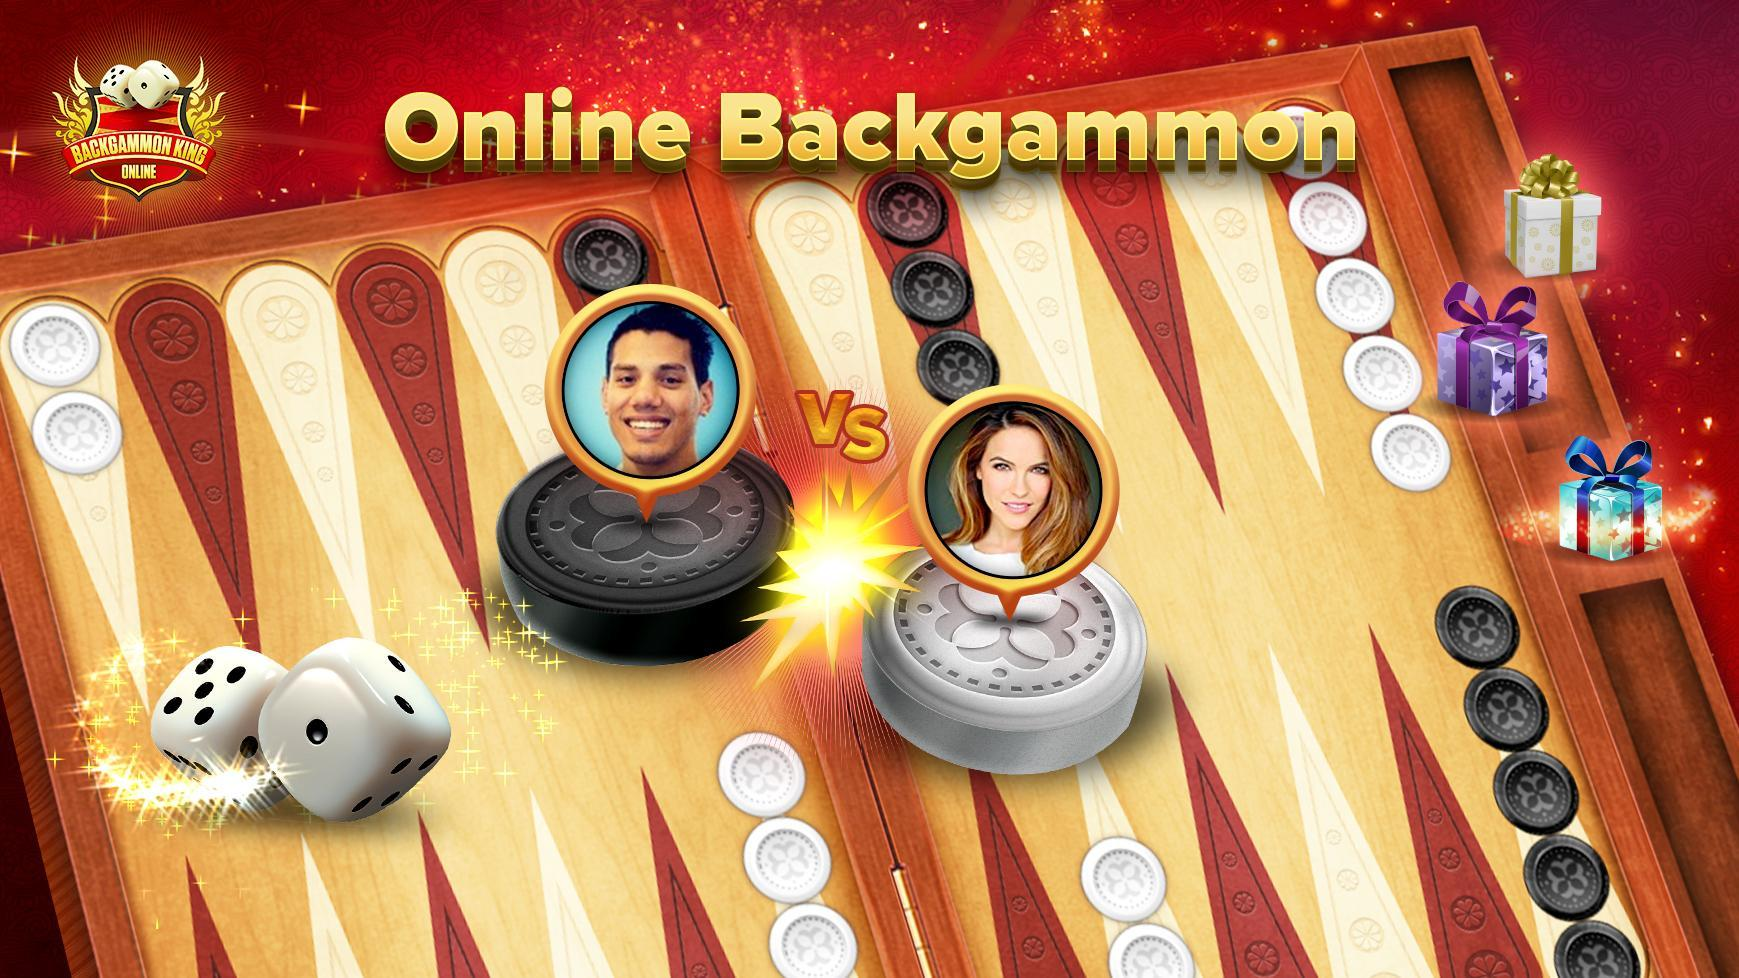 Backgammon King Online 🎲 Free Social Board Game 2.10.5 Screenshot 2